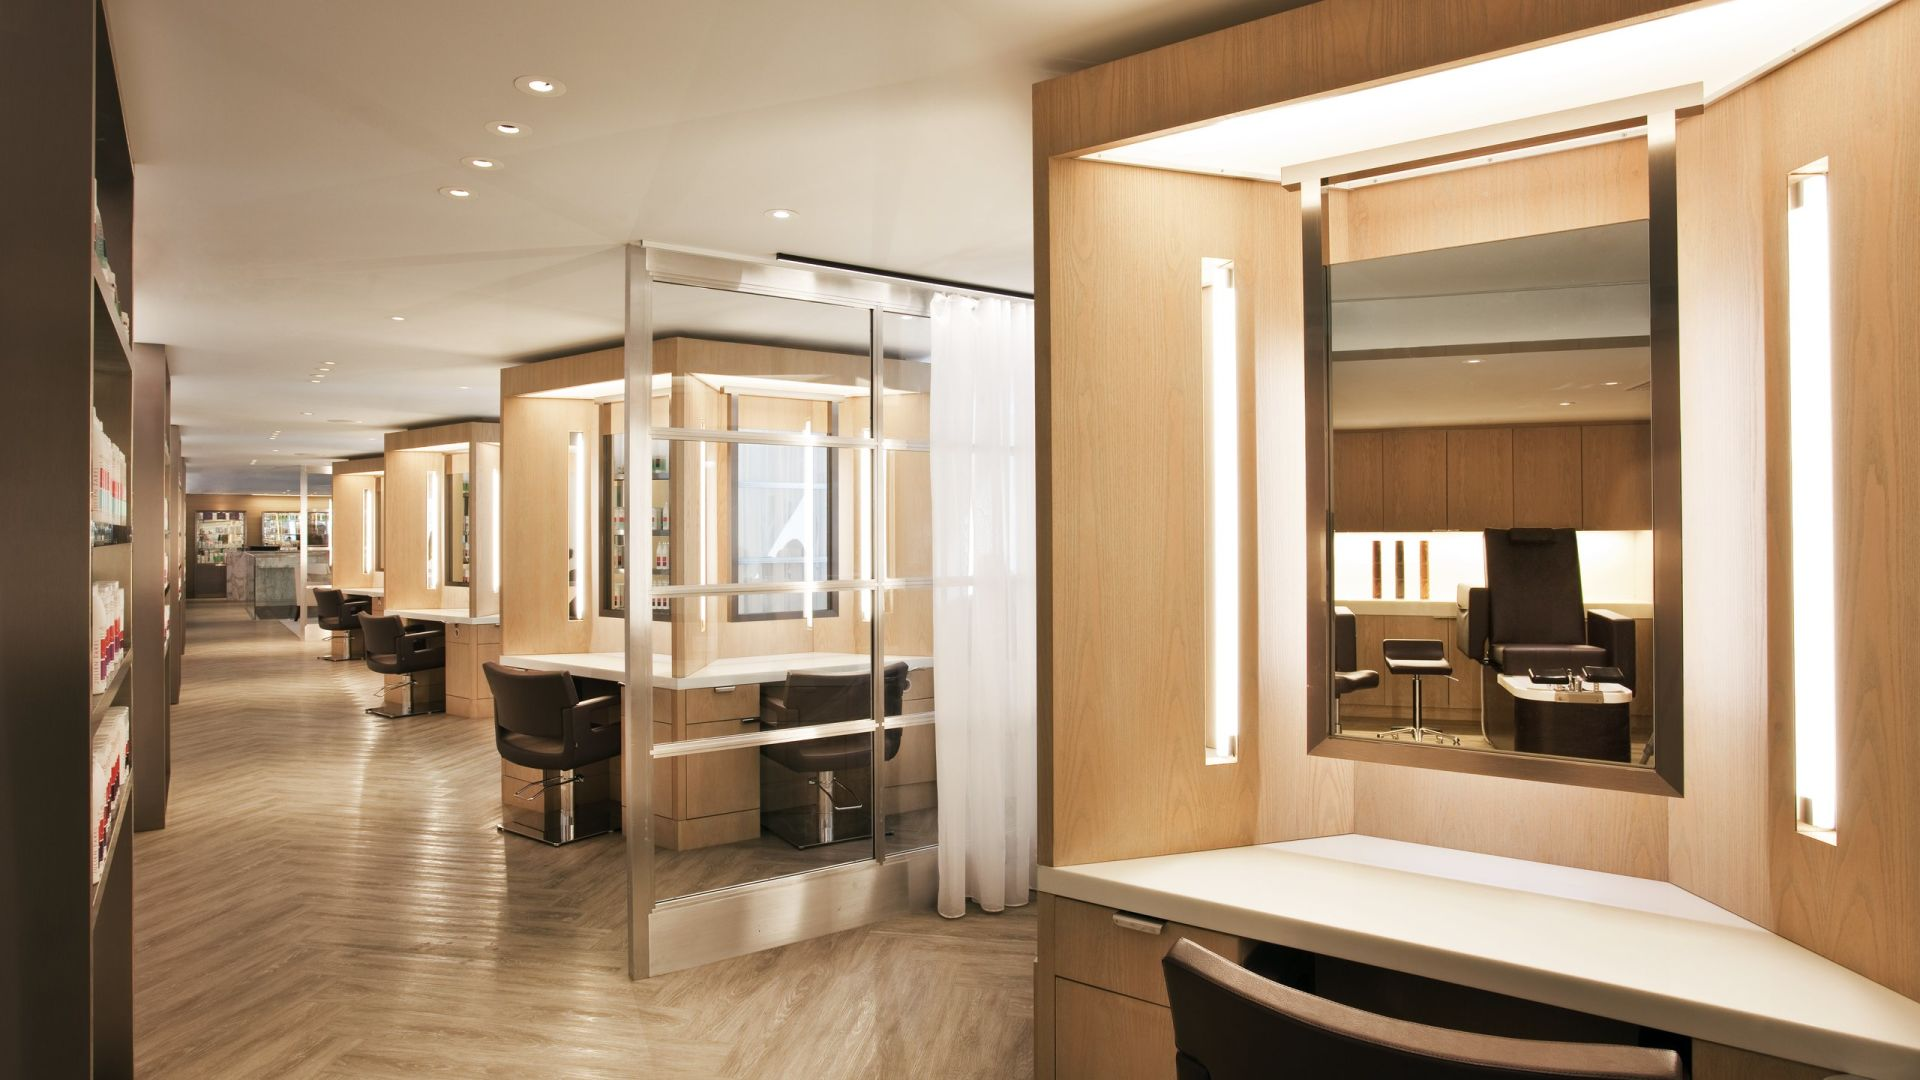 Stations coiffure | Julien Farel Restore Salon & Spa | Loews Regency New York Hotel